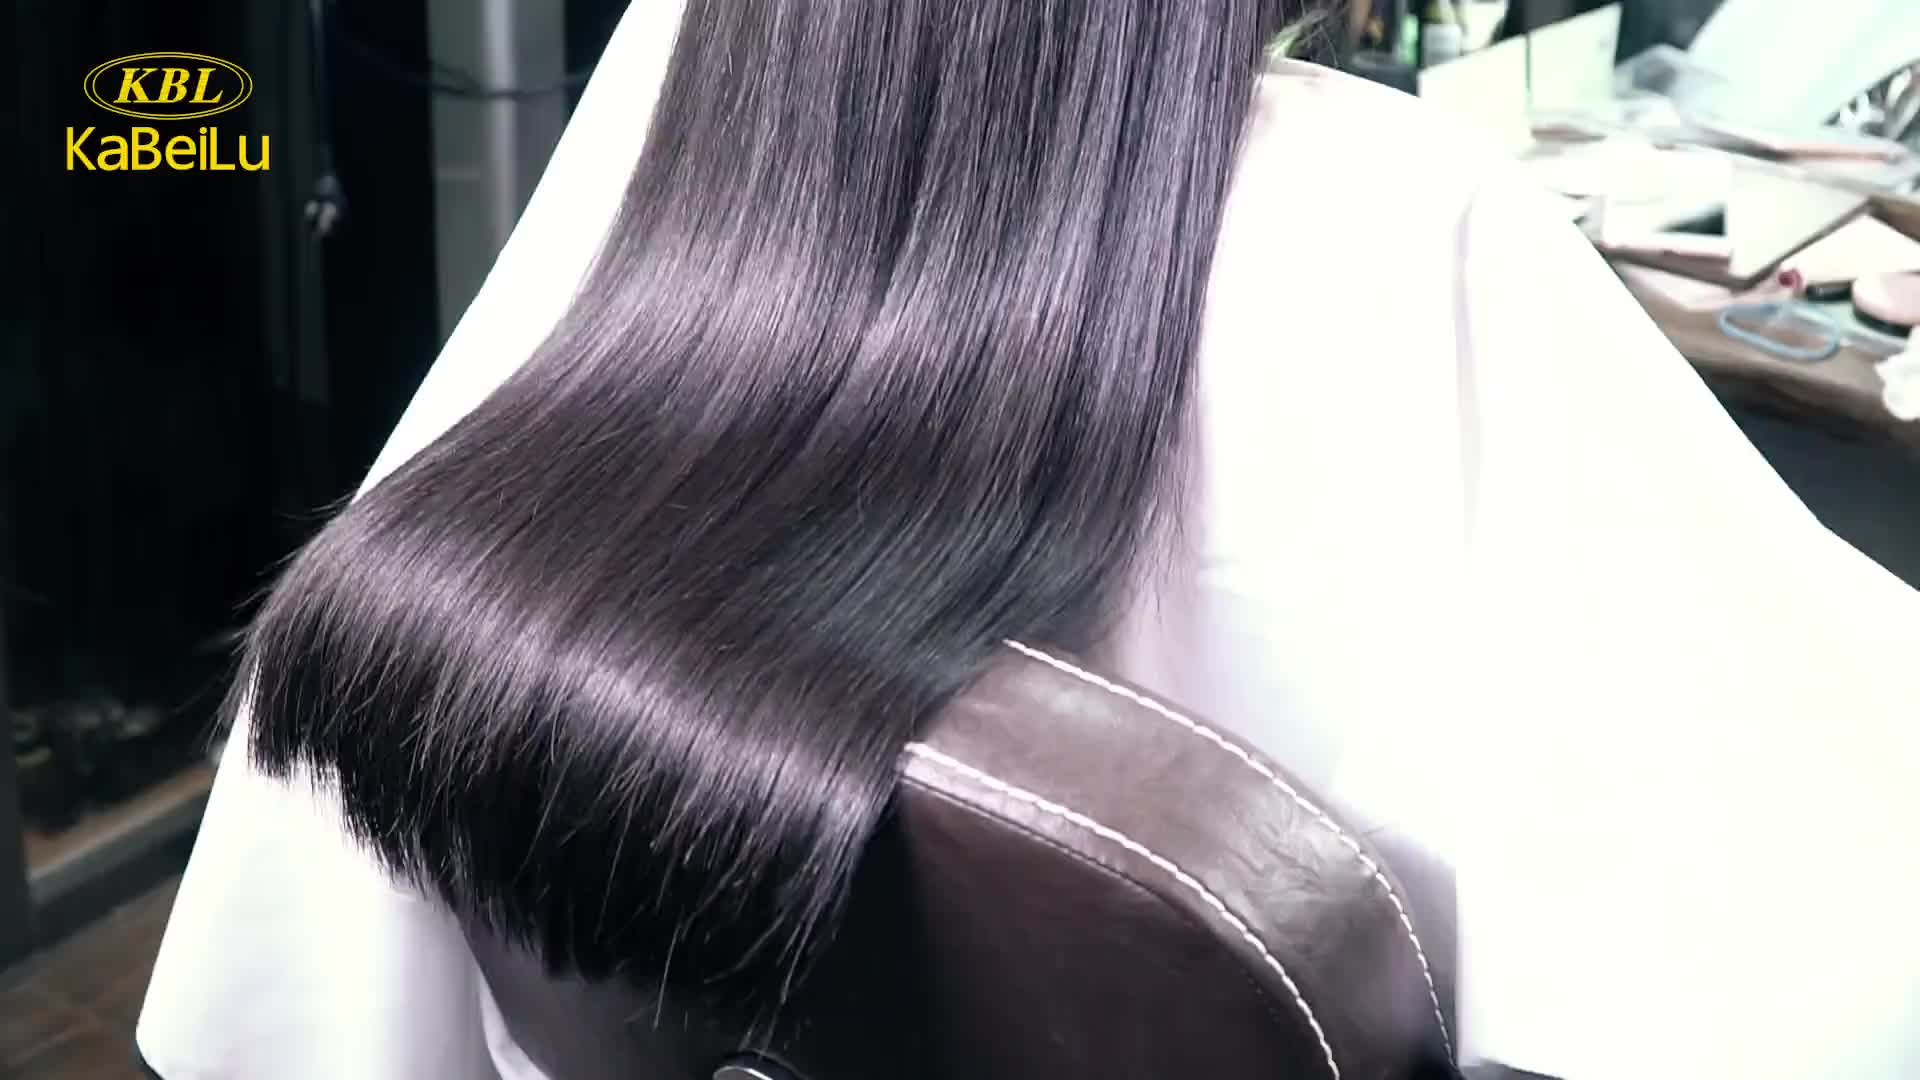 KBL virgin cuticle aligned hair from india,100% natural indian human hair price list,raw indian temple hair directly from india